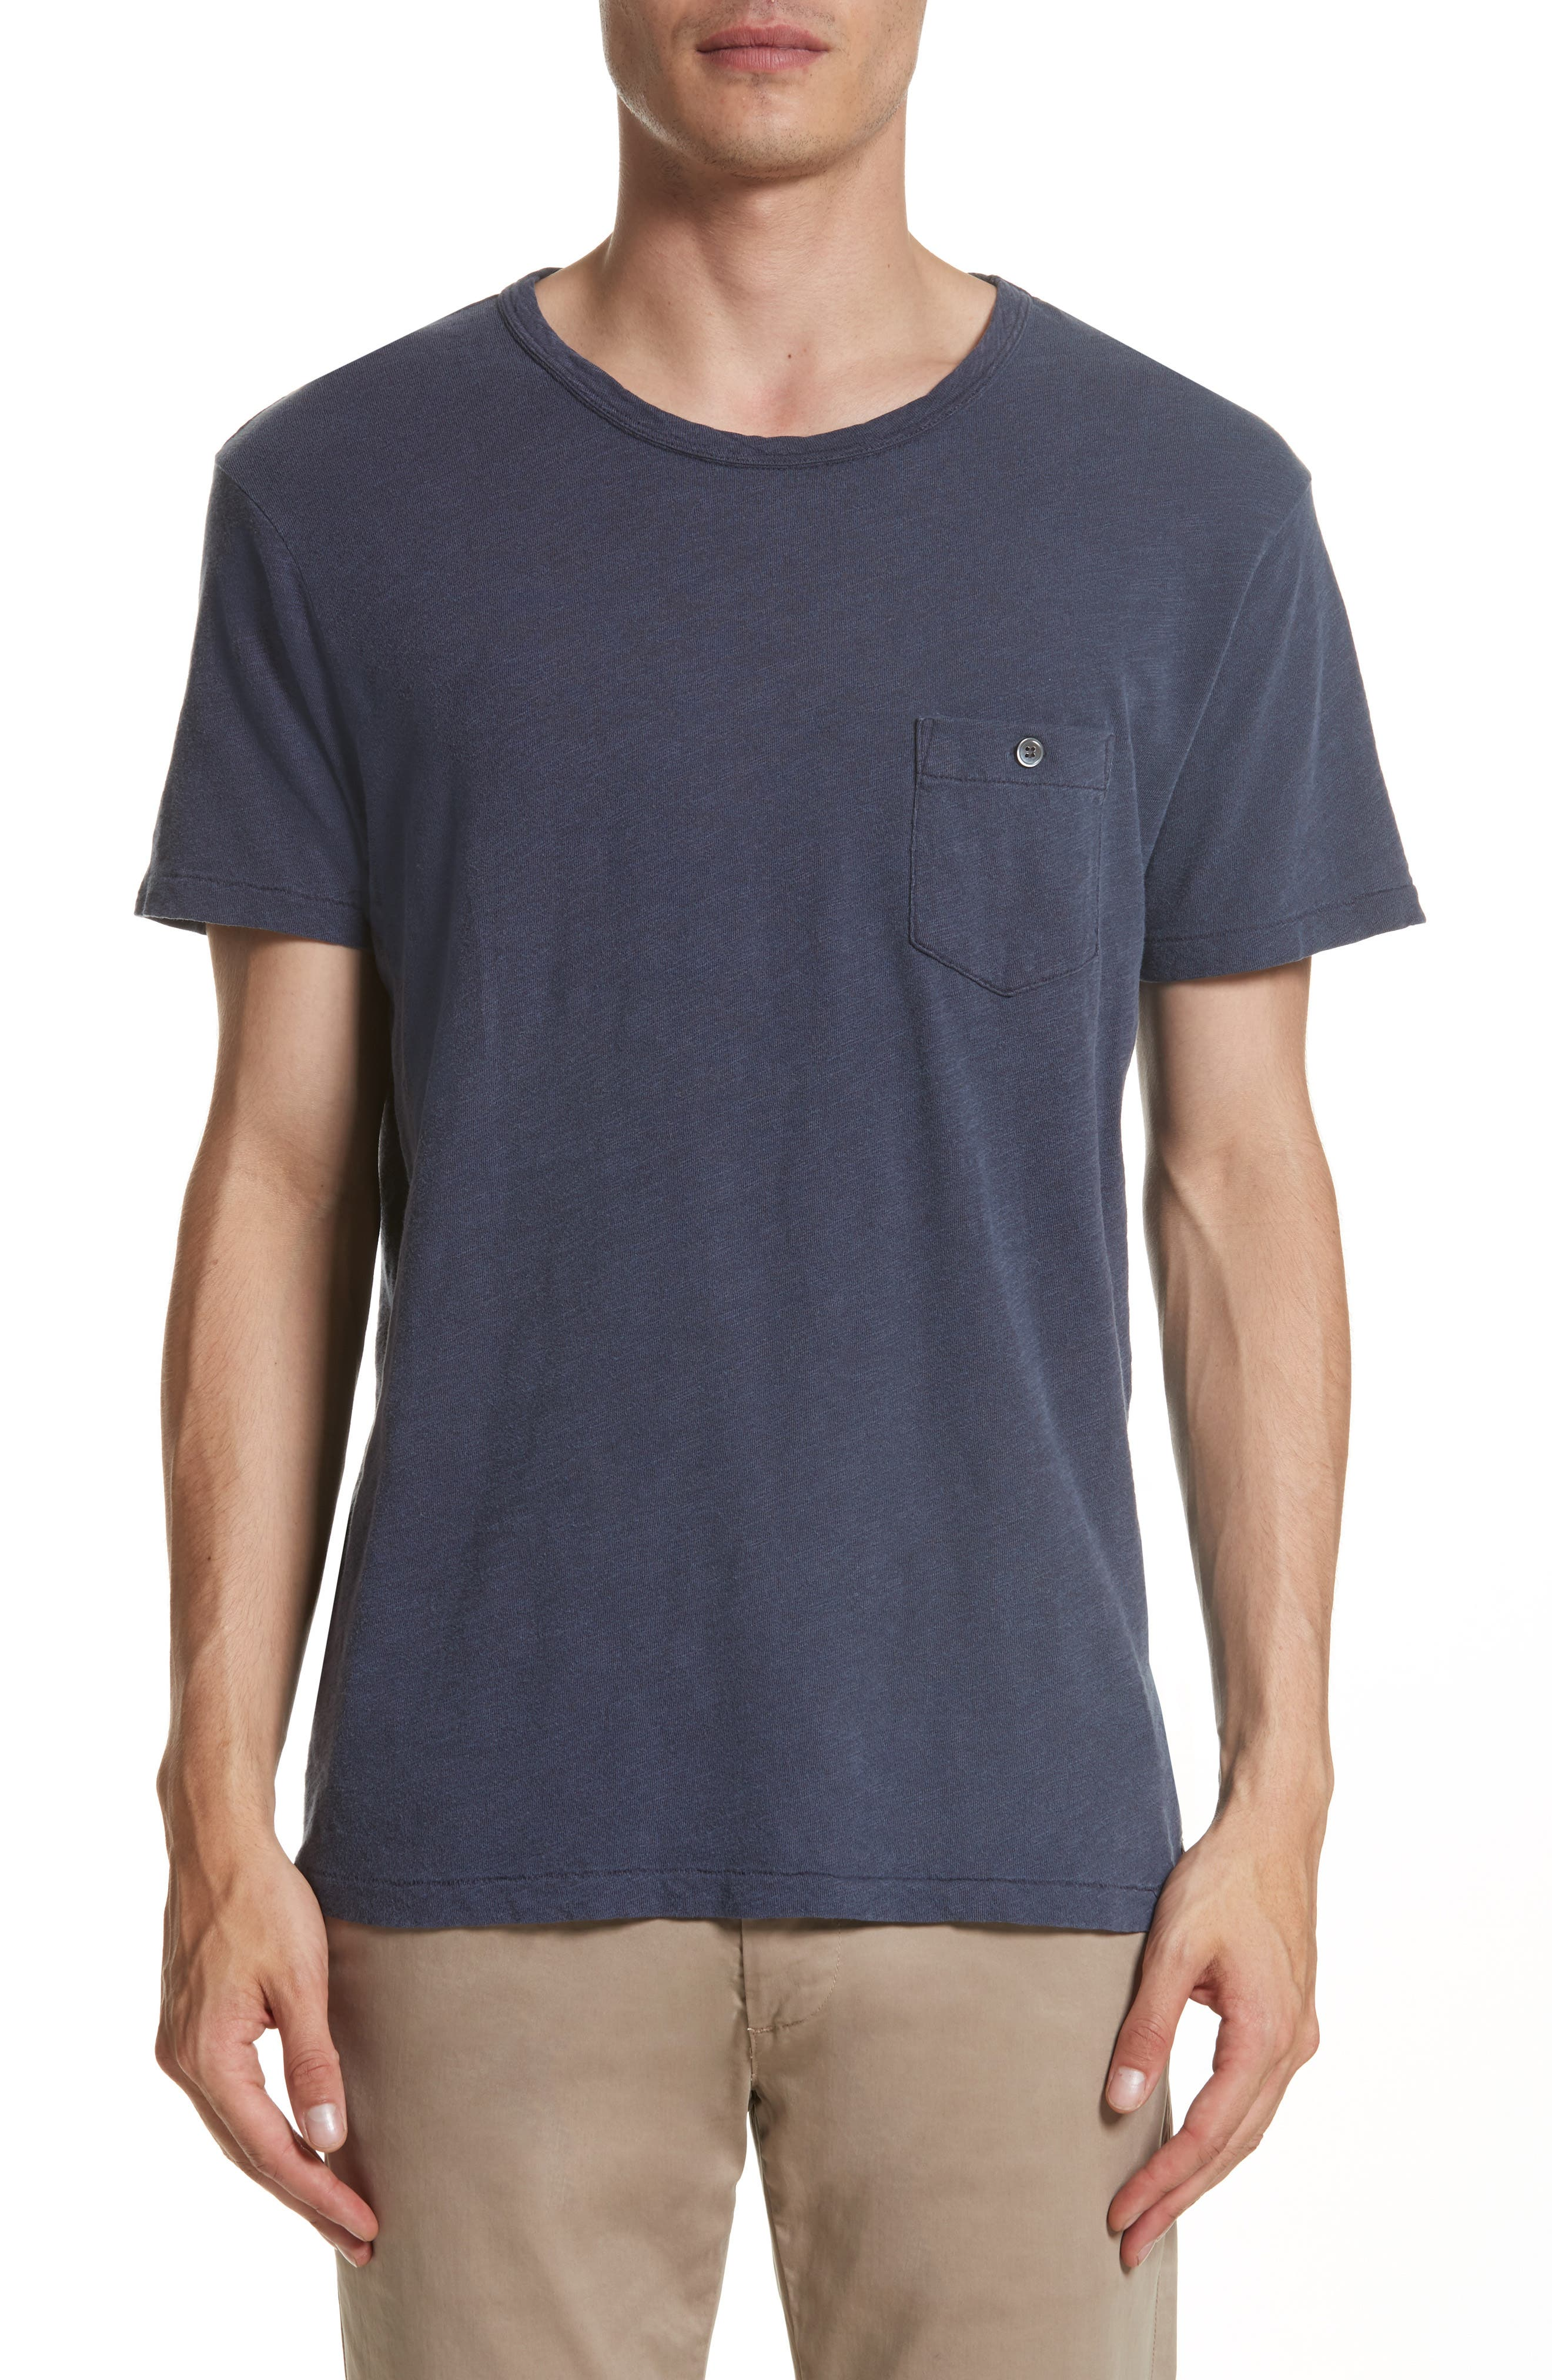 Todd Snyder 'Classic' Pocket T-Shirt